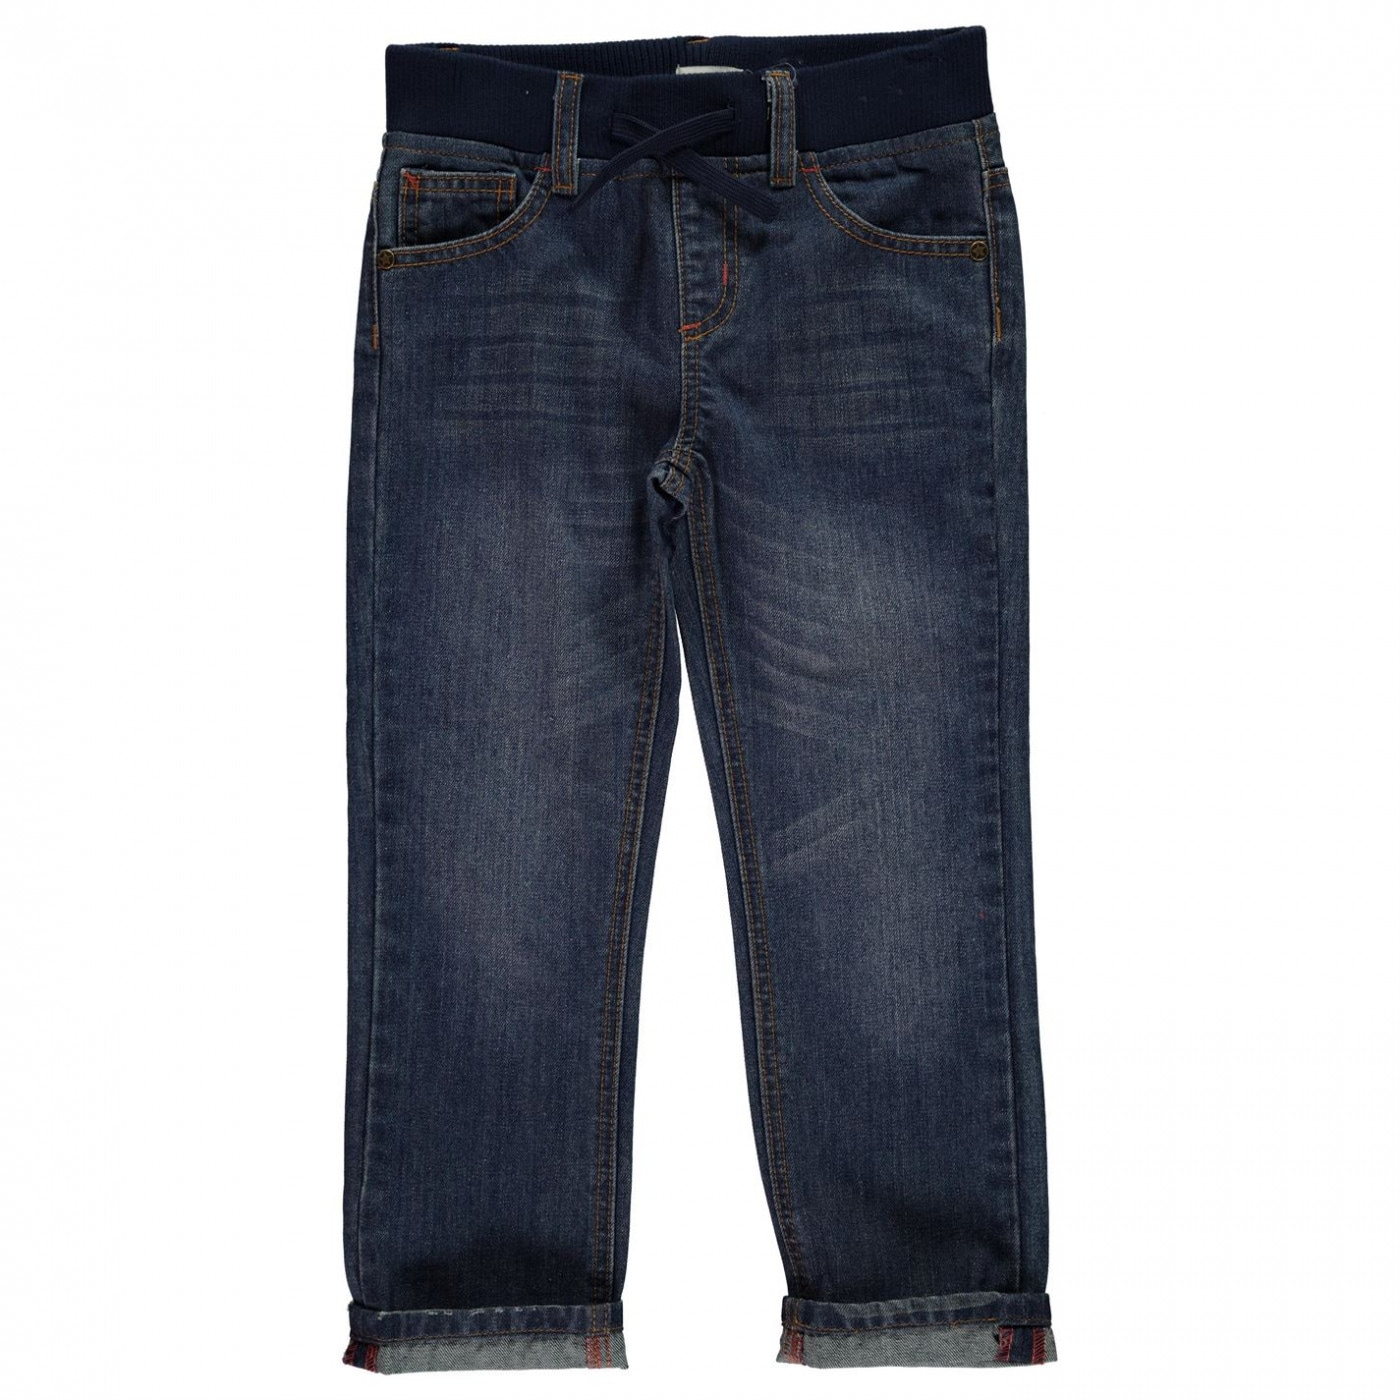 c60d7ccd2c76 Crafted Ribbed Waistband Jeans Infant Boys - FACTCOOL